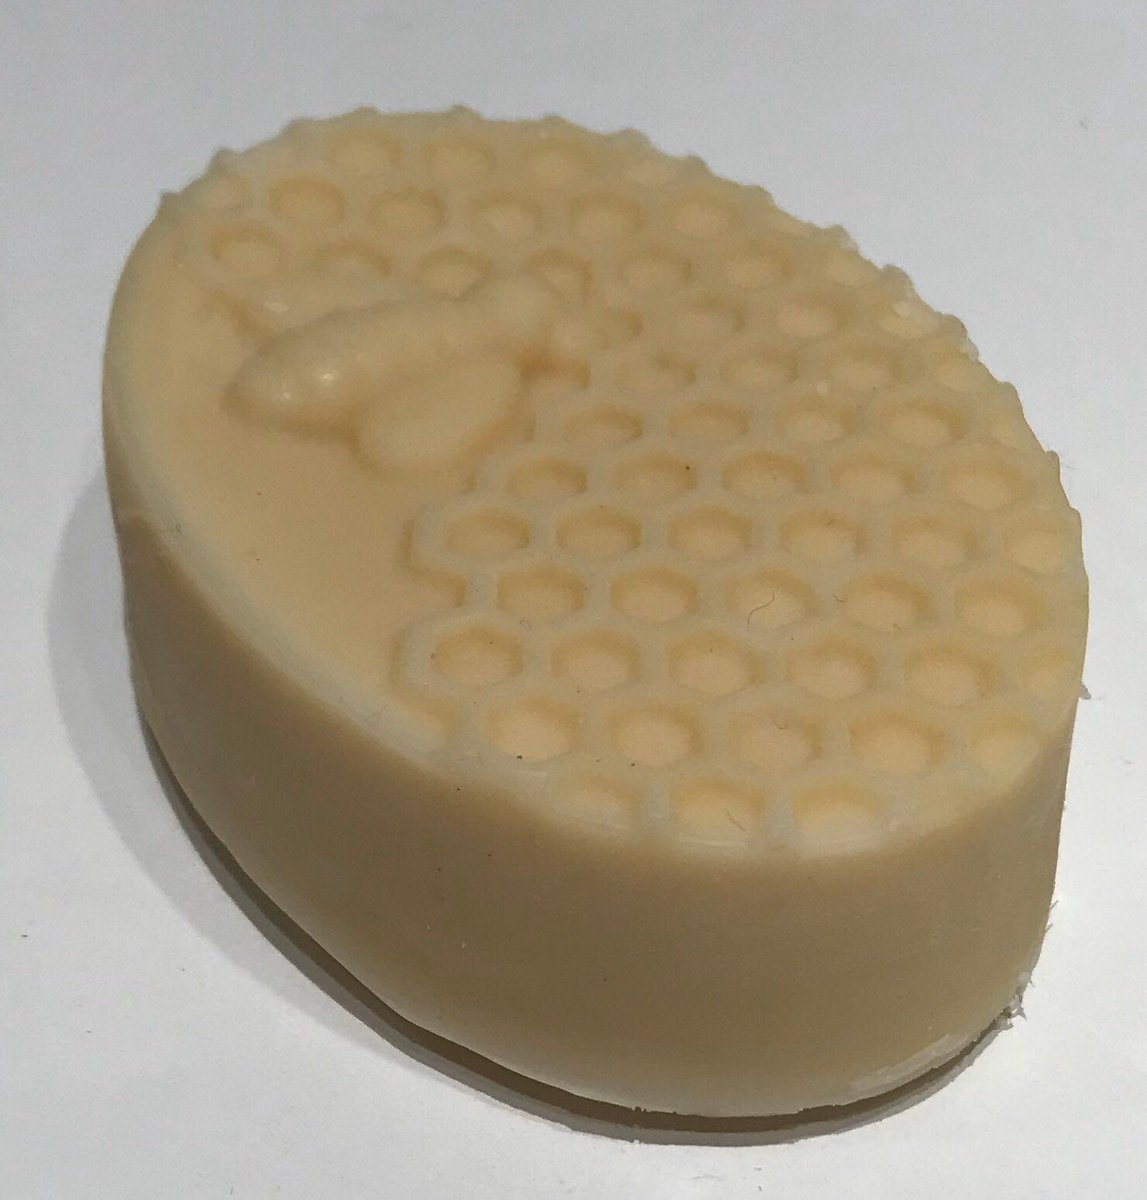 Excited to share this item from my #etsy shop: Handmade Honey Natural Goats Milk Soap. Fantastic for dry skin moisturising soap.  https://etsy.me/377z6xo  #soap #soapcutting #goatsmilk #goatsmilksoap #honeypot #honeysoap #bees #handmade #handmadesoap pic.twitter.com/XyEnTFKWwj